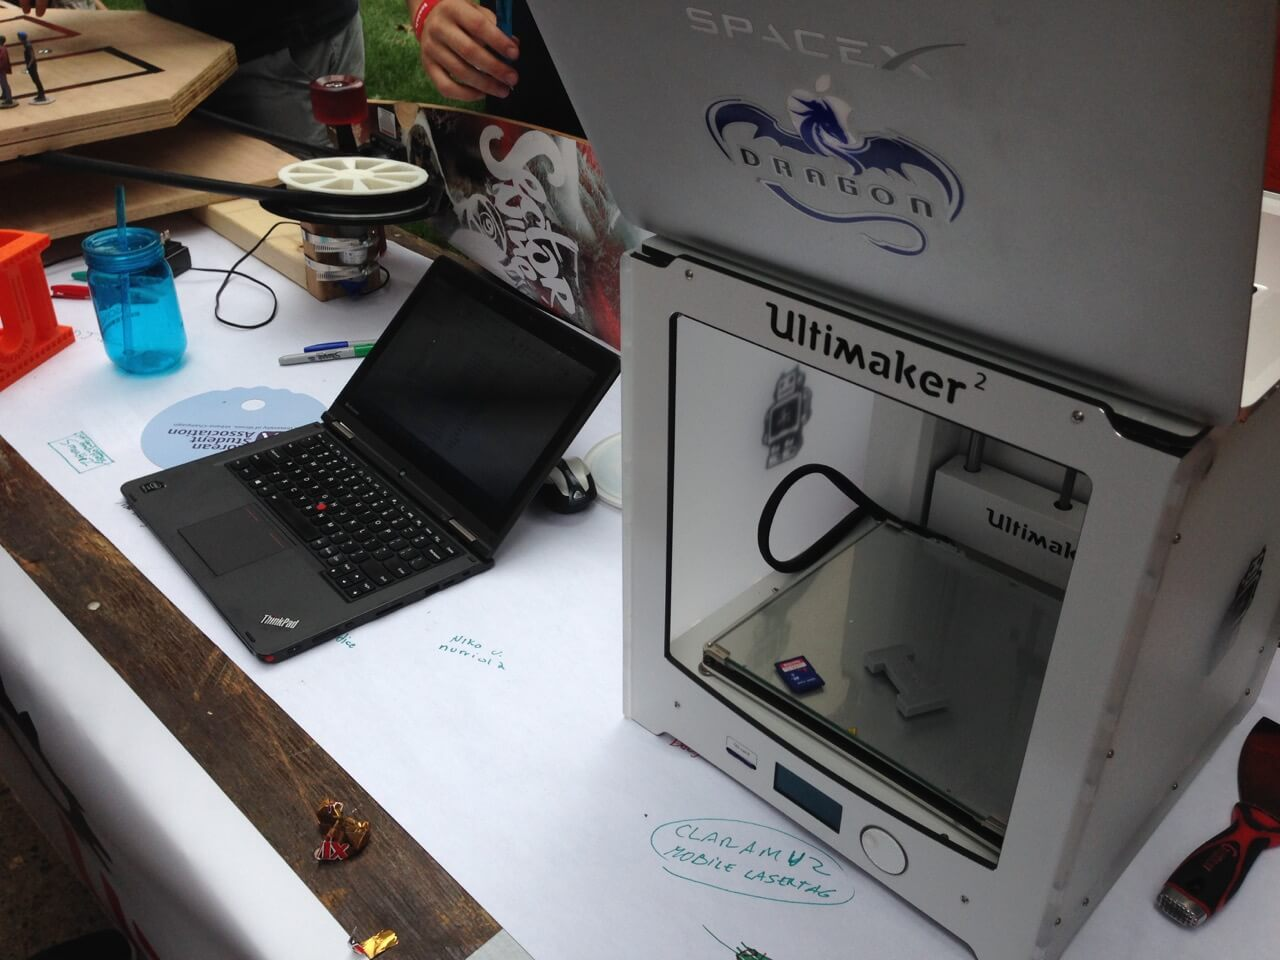 Ultimaker 2 was generously provided to Illinois MakerLab by Ultimaker